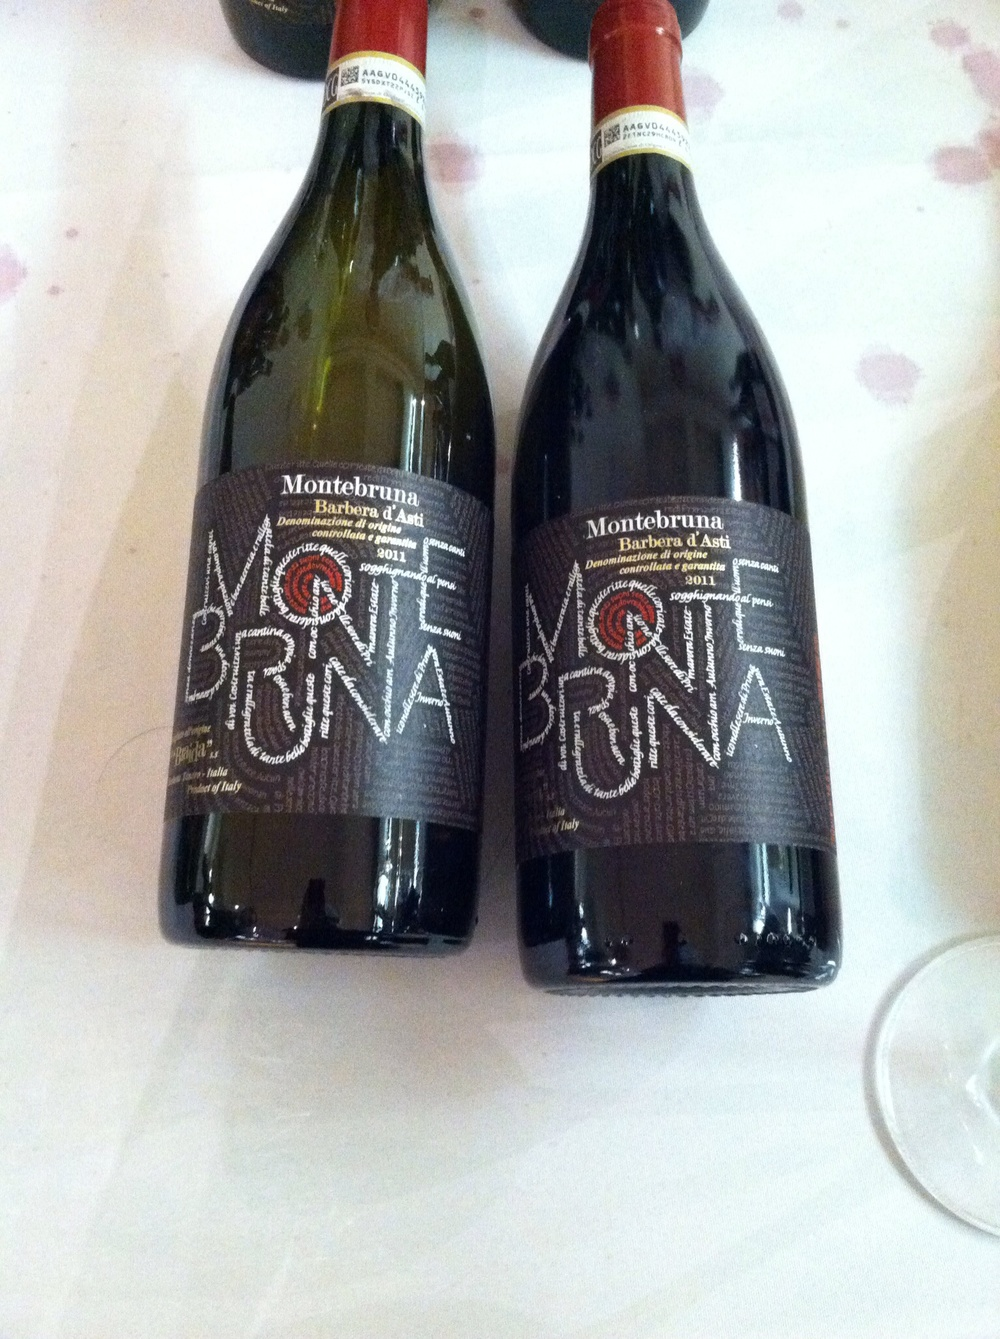 More Piedmontese offerings - Barbera dAsti